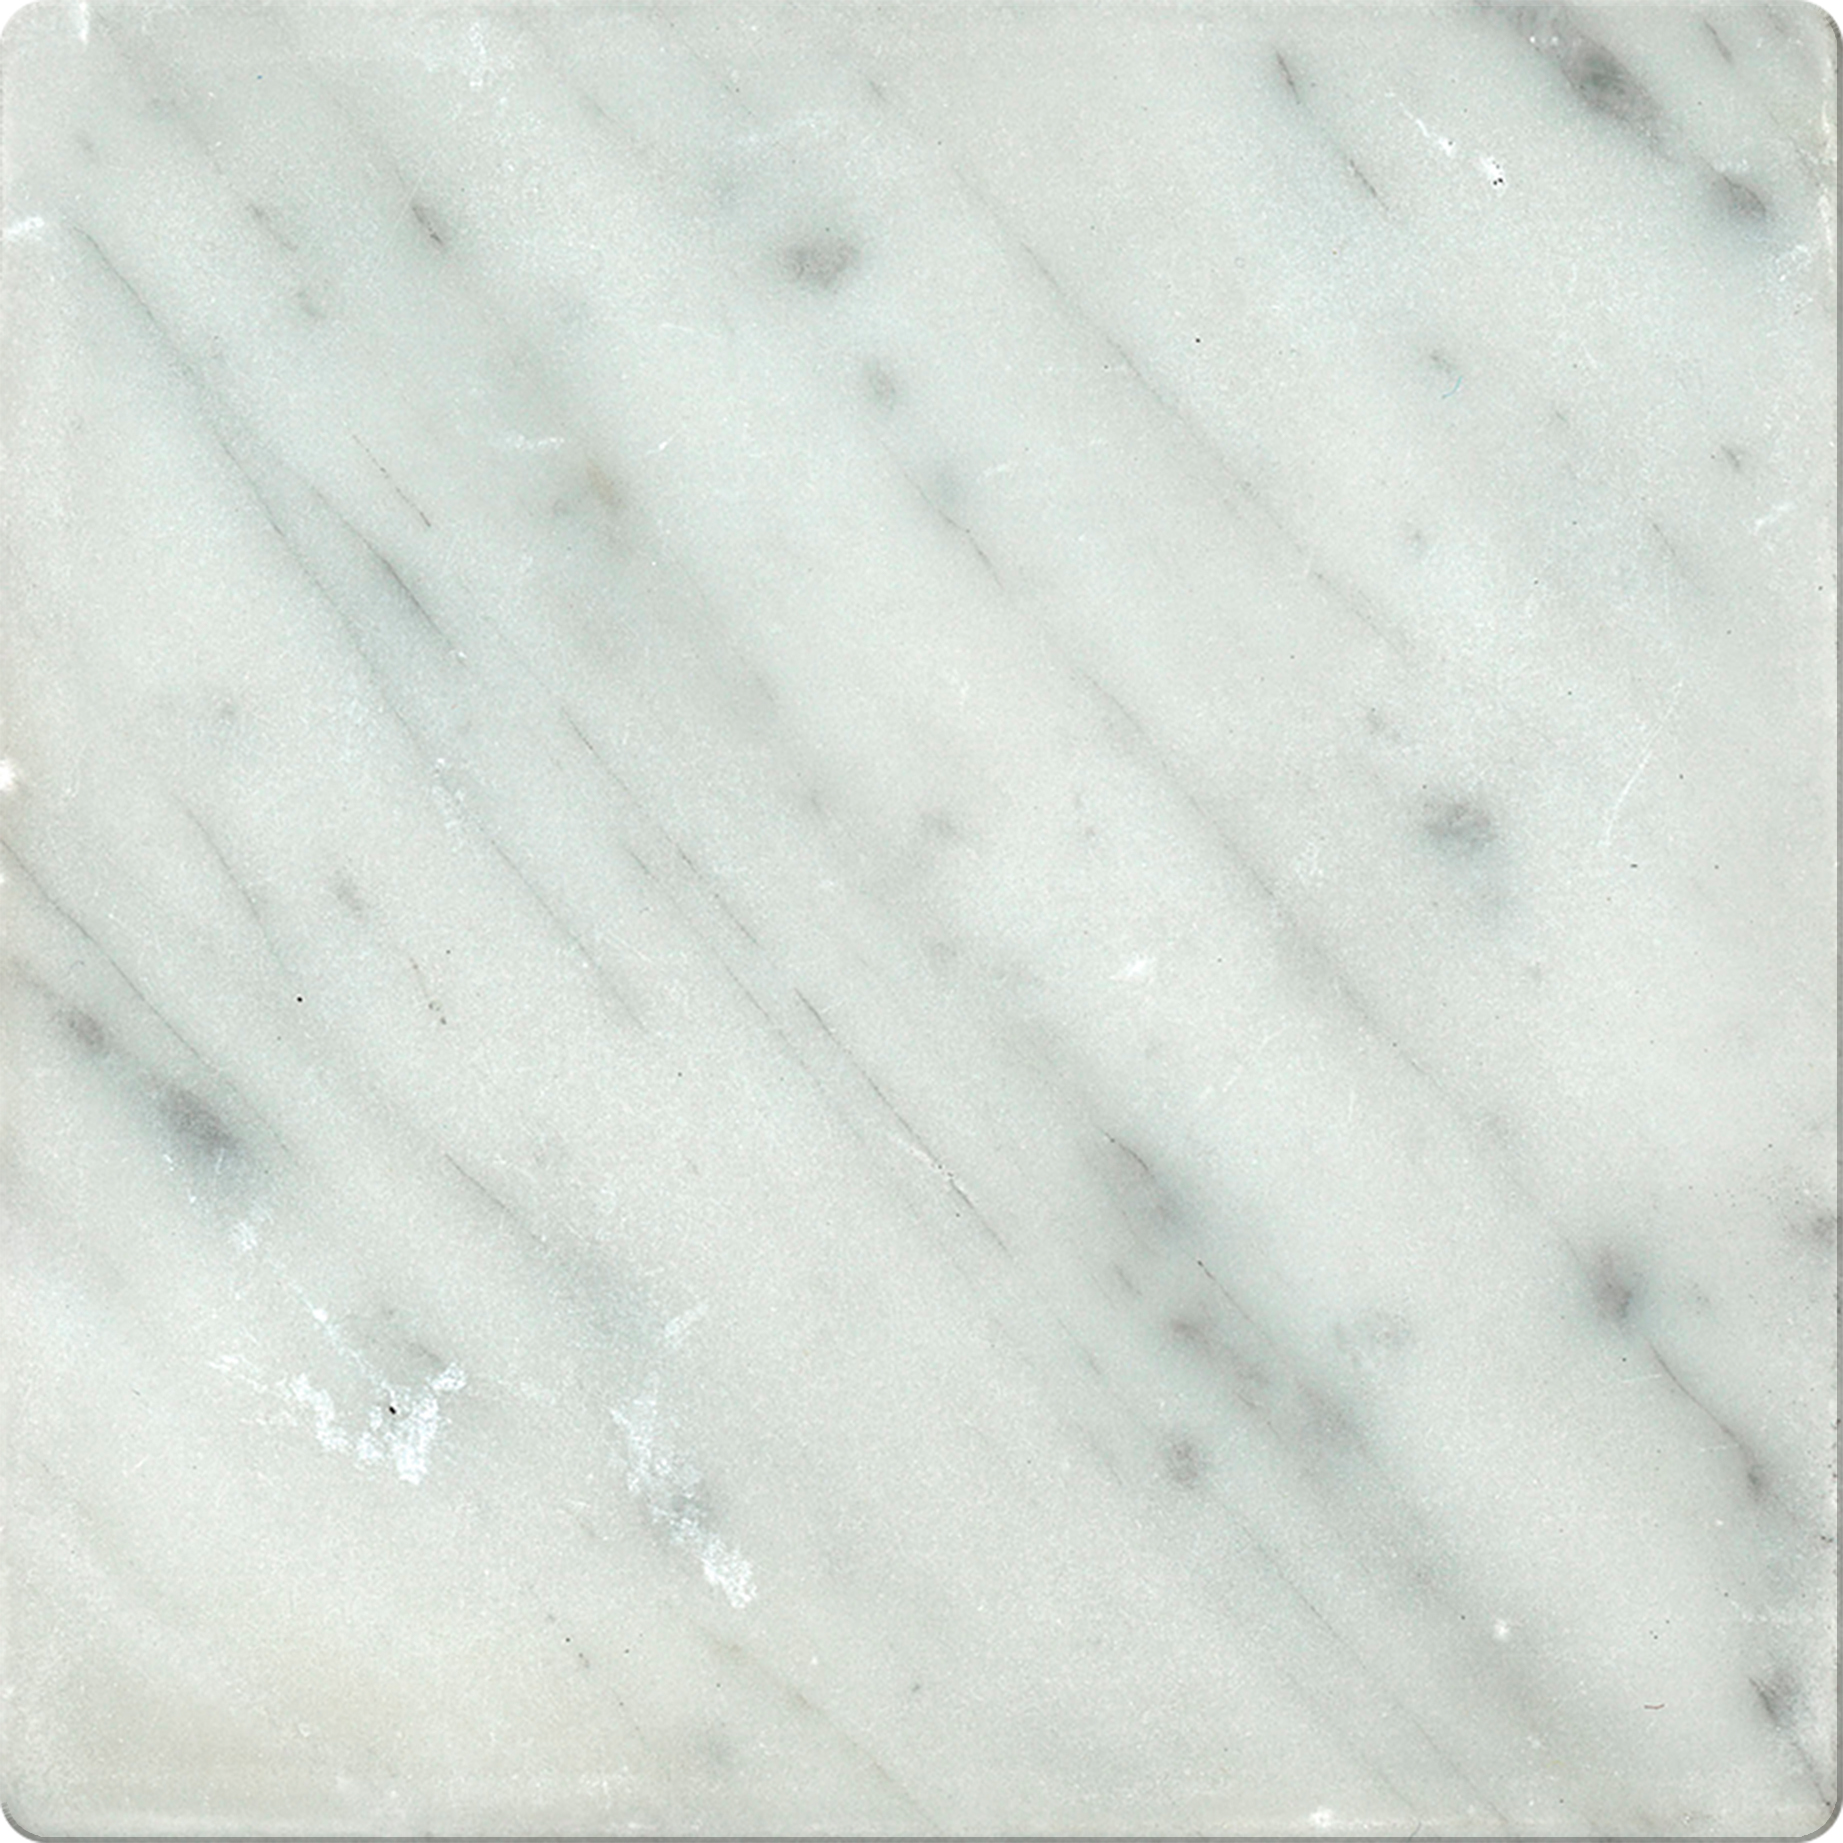 Marble table top - 3 Table Top Finishes Available